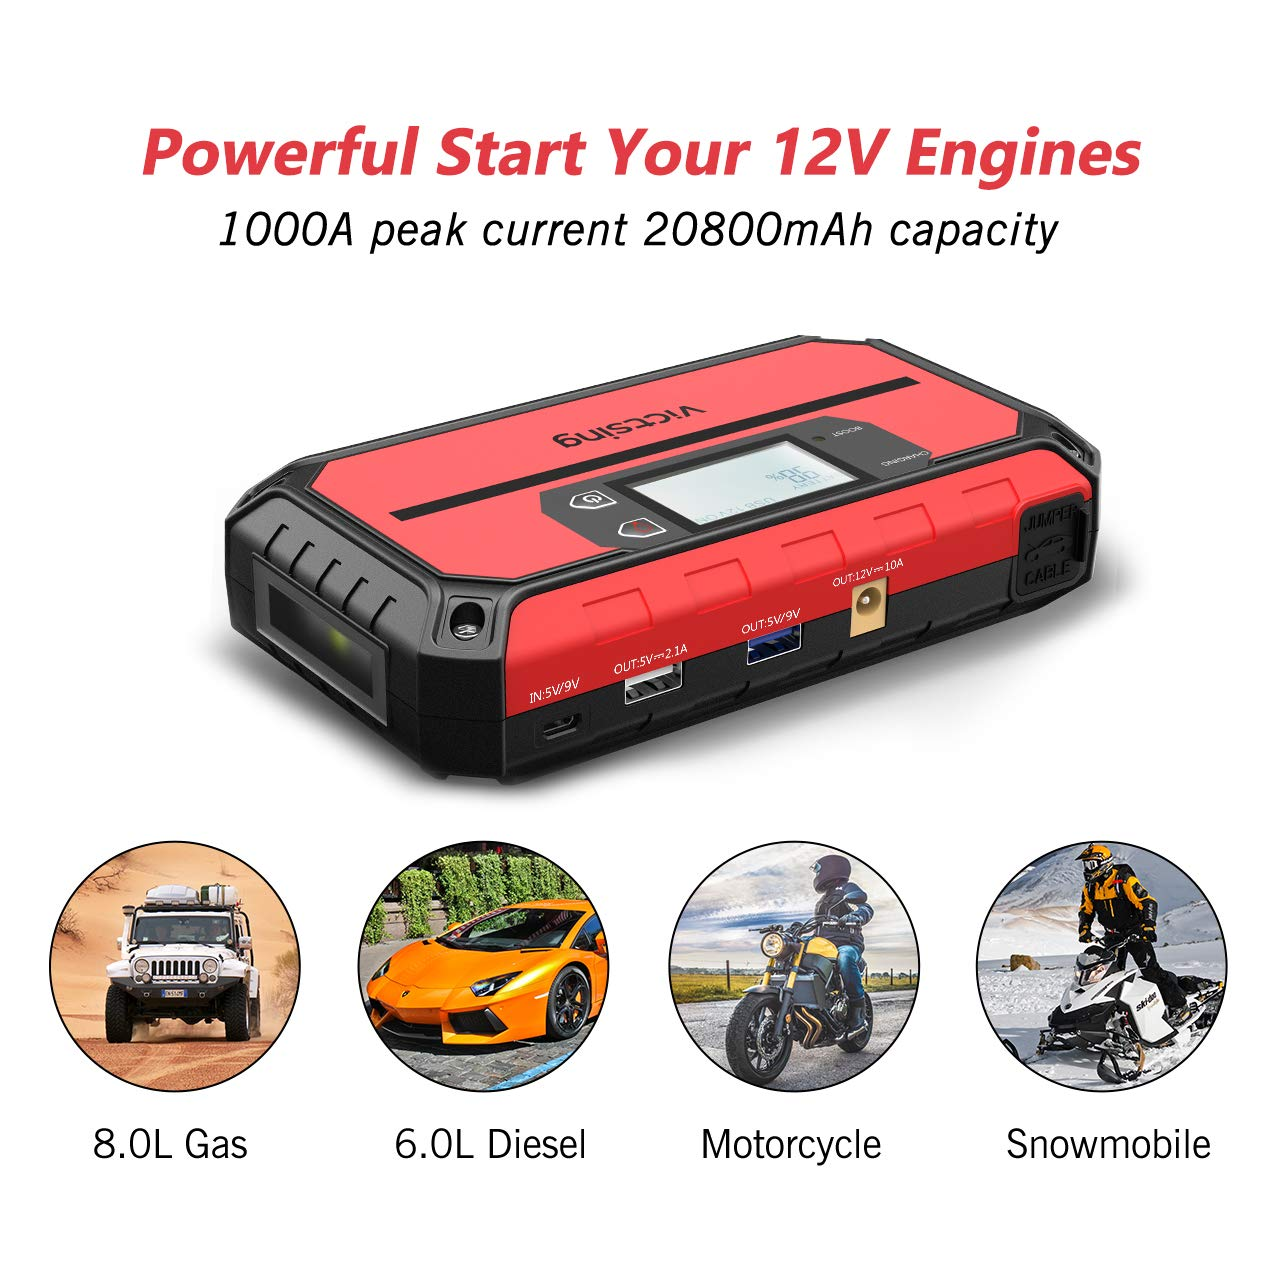 VicTsing Portable Car Jump Starter 1000A Peak 20800mAh (Up to 8.0L Gas, 6.0L Diesel Engine), 12V Auto Battery Booster,5 in 1 Compact Power Pack with QC3.0 Output, Built-in Compass and LED Light by VicTsing (Image #2)